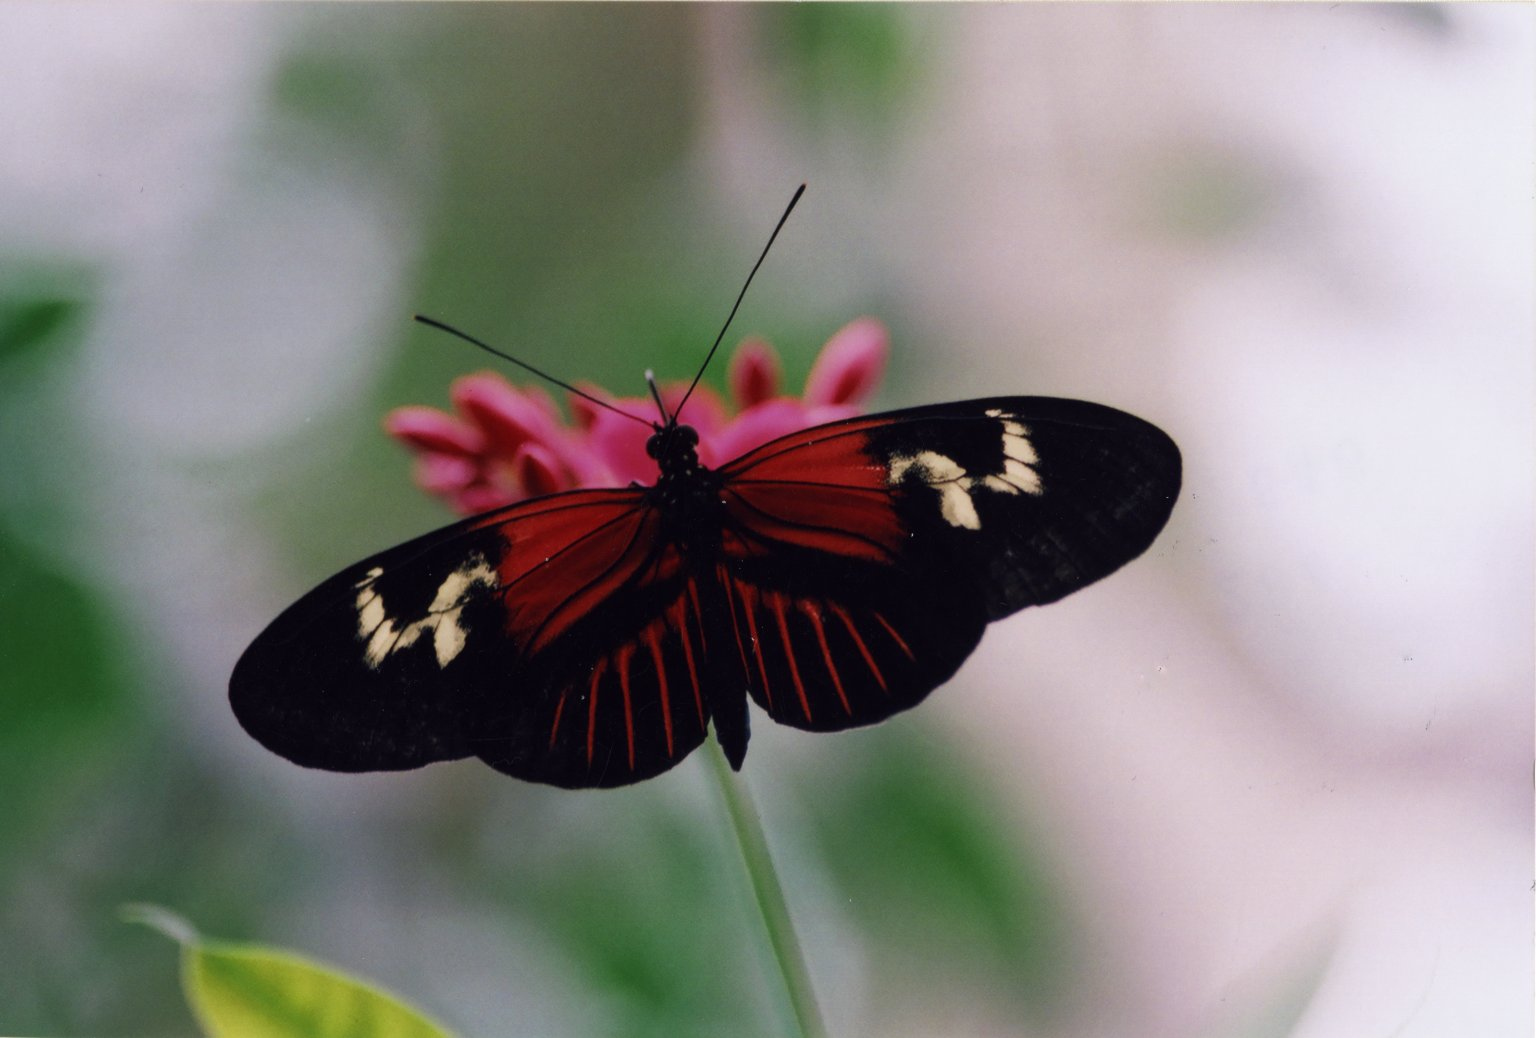 Close up of red and black butterfly on pink flower